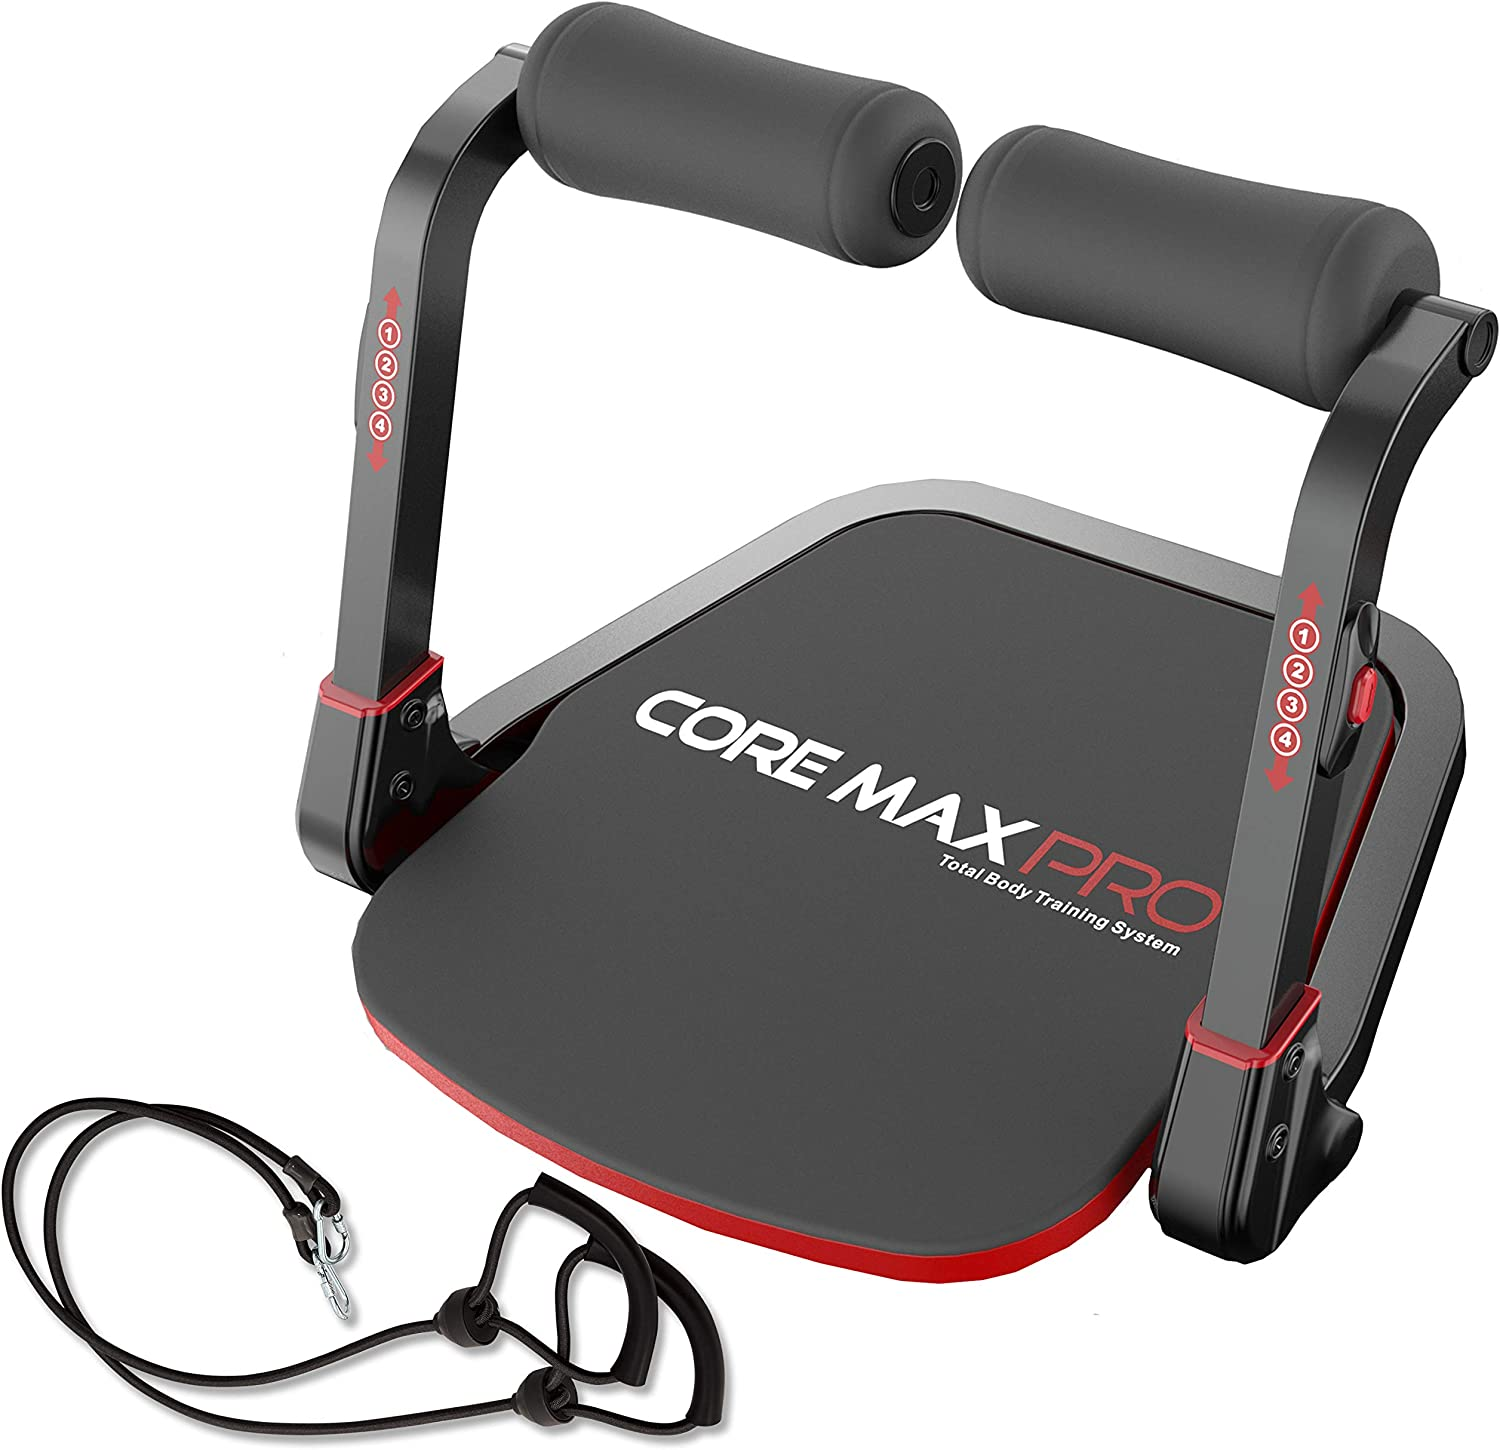 Core Max PRO with Resistance Bands Abs and Total Body Smart 8 min Workout & Cardio Machine, Red/Black : Sports & Outdoors